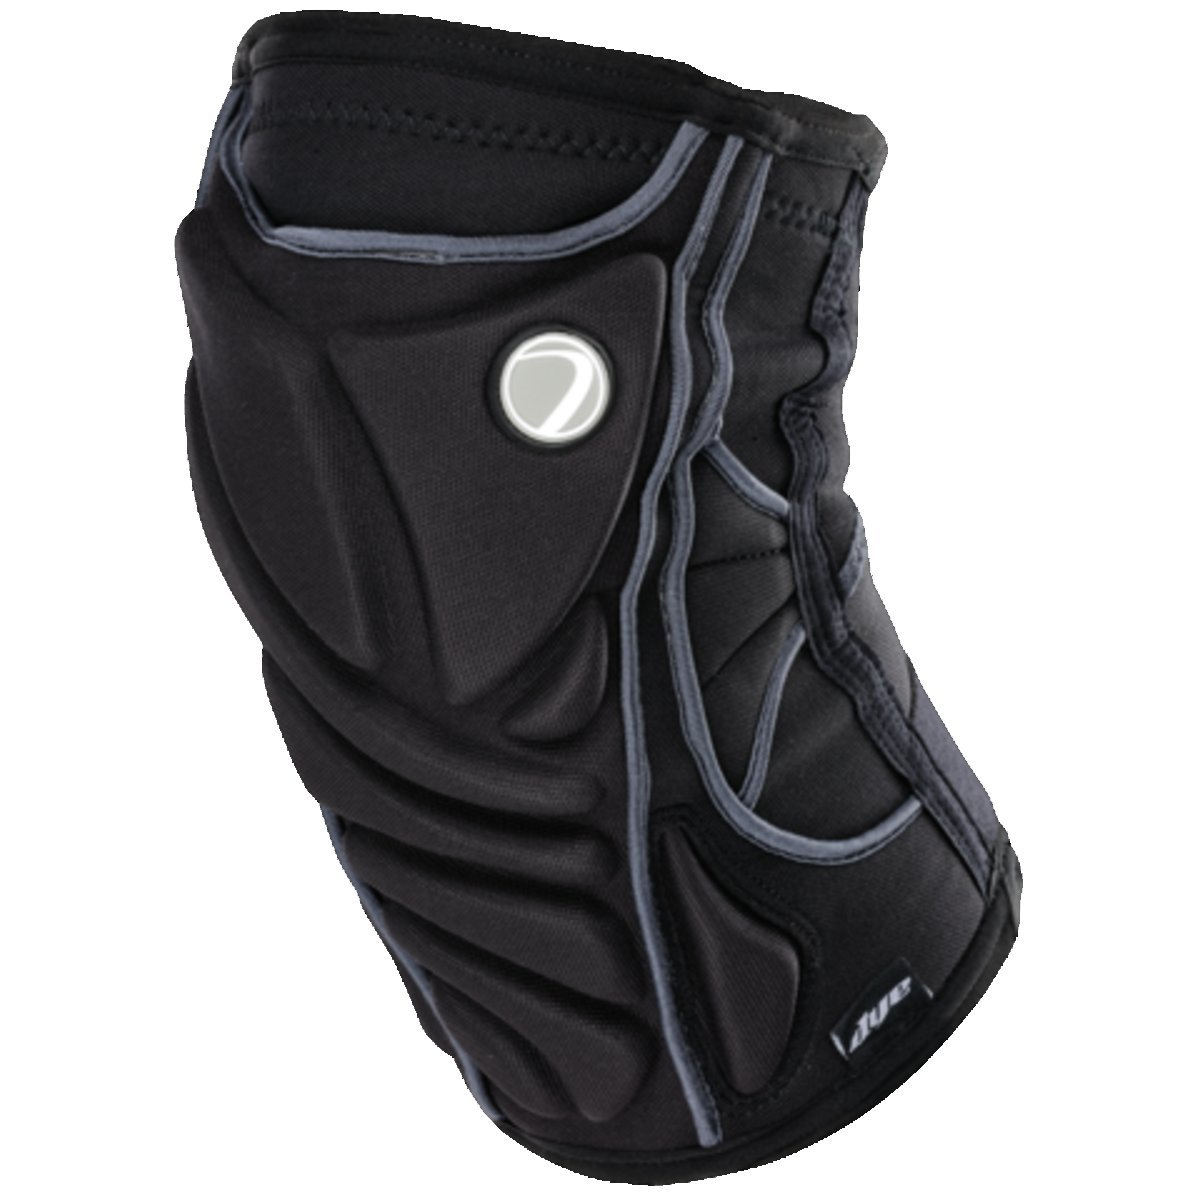 View larger image of Dye Performance Paintball Knee Pads